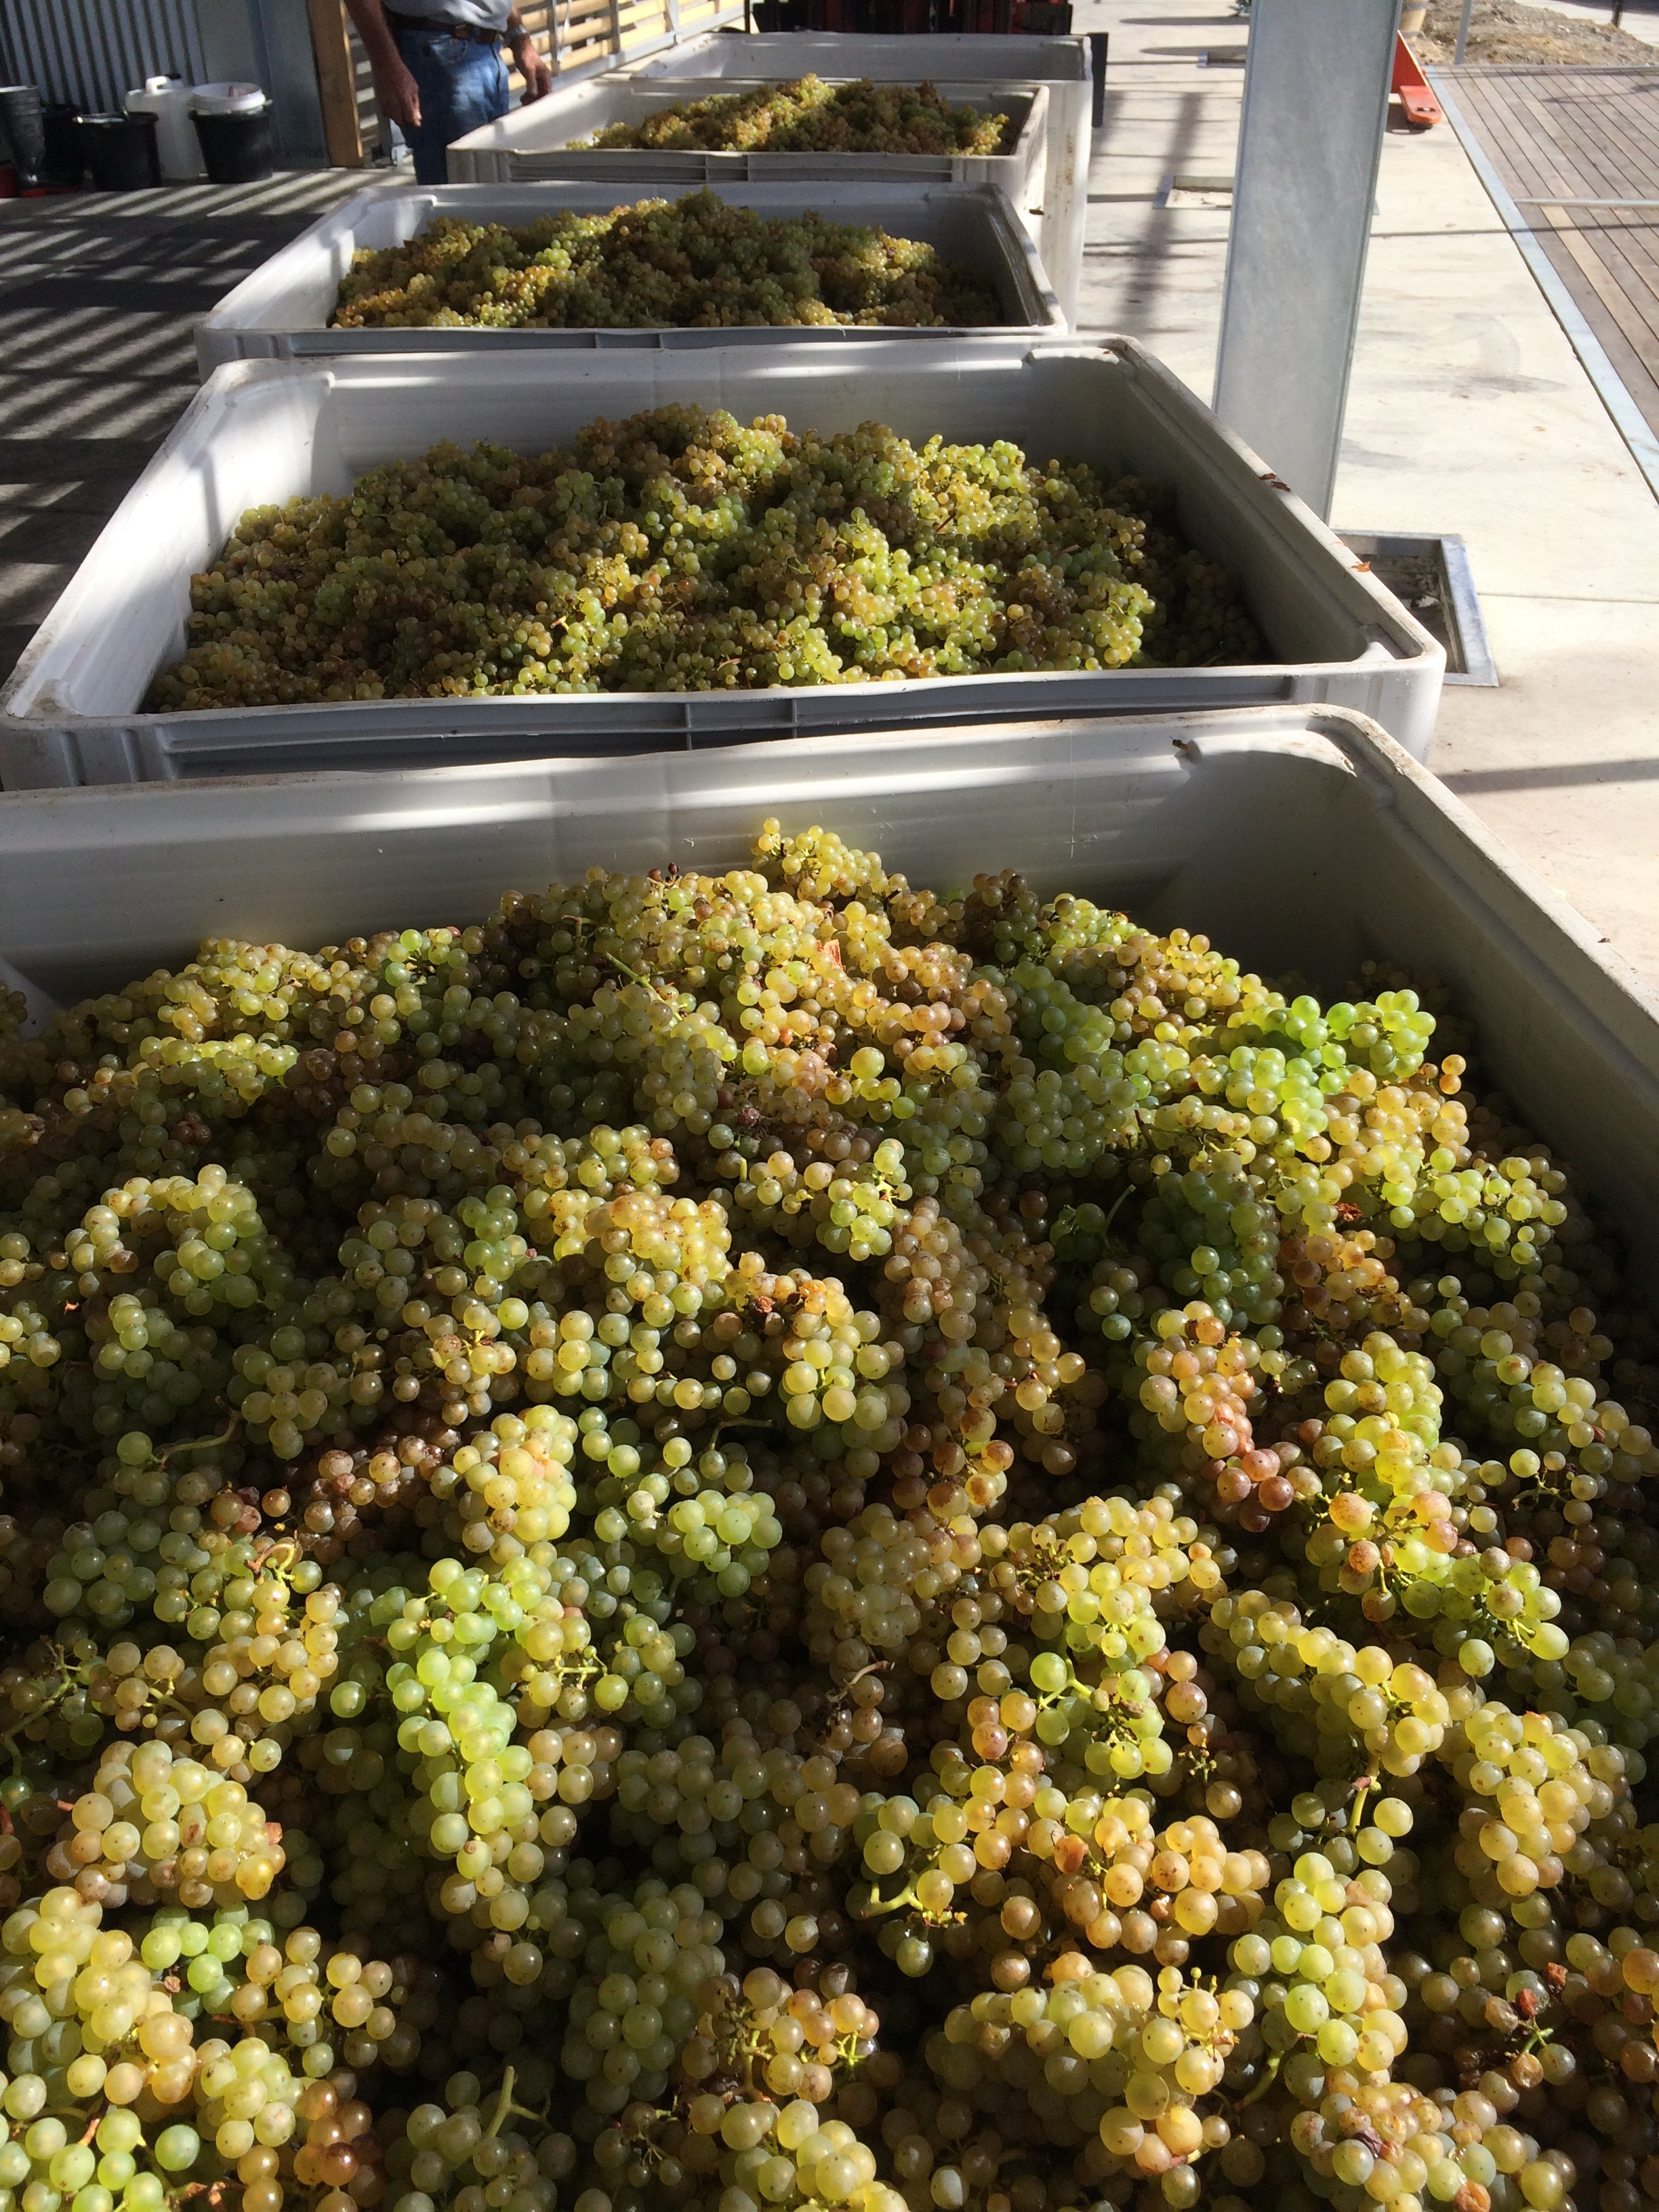 While yields were down in Chardonnay and Pinot Noir, Riesling flowers later so yields were at normal levels. Dry conditions meant botrytis wasn't a problem this year.